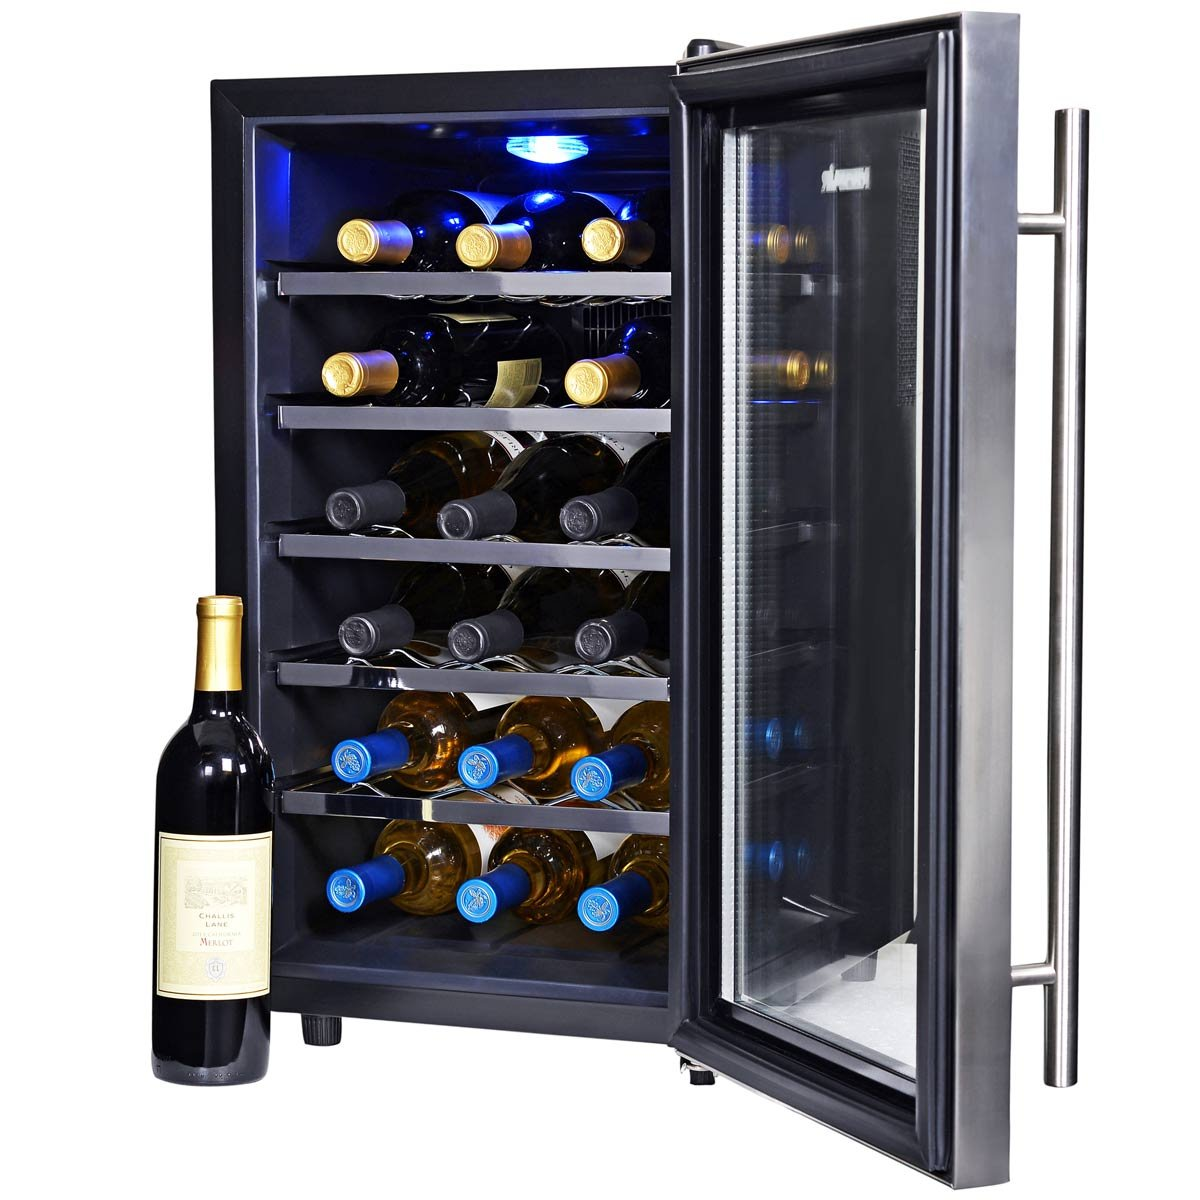 AW-281E Stainless Steel with Glass Door NewAir Wine Cooler and Refrigerator 28 Bottle Freestanding Wine Chiller Fridge